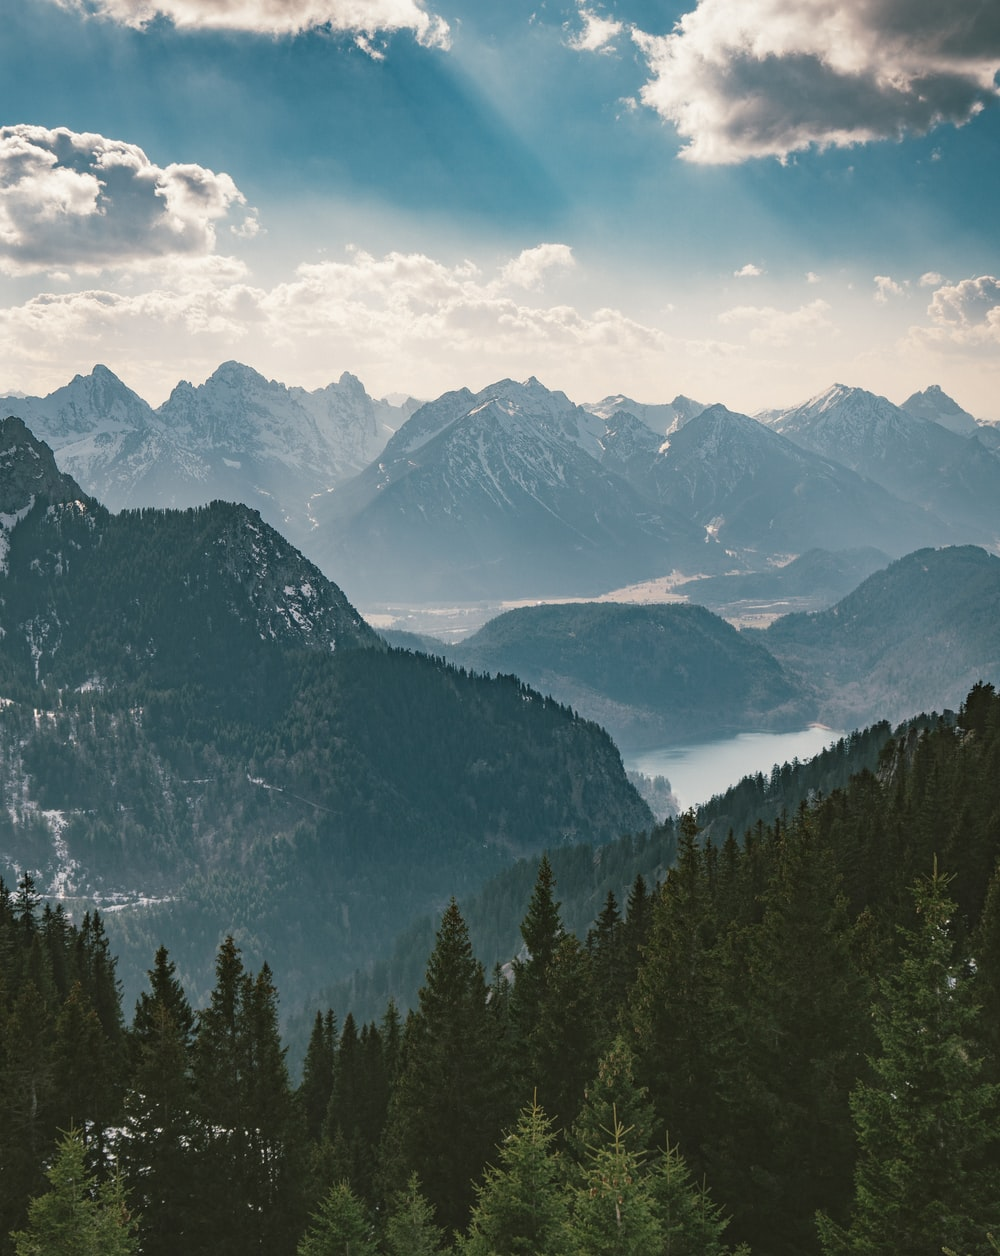 landscape photography of mountain and green trees